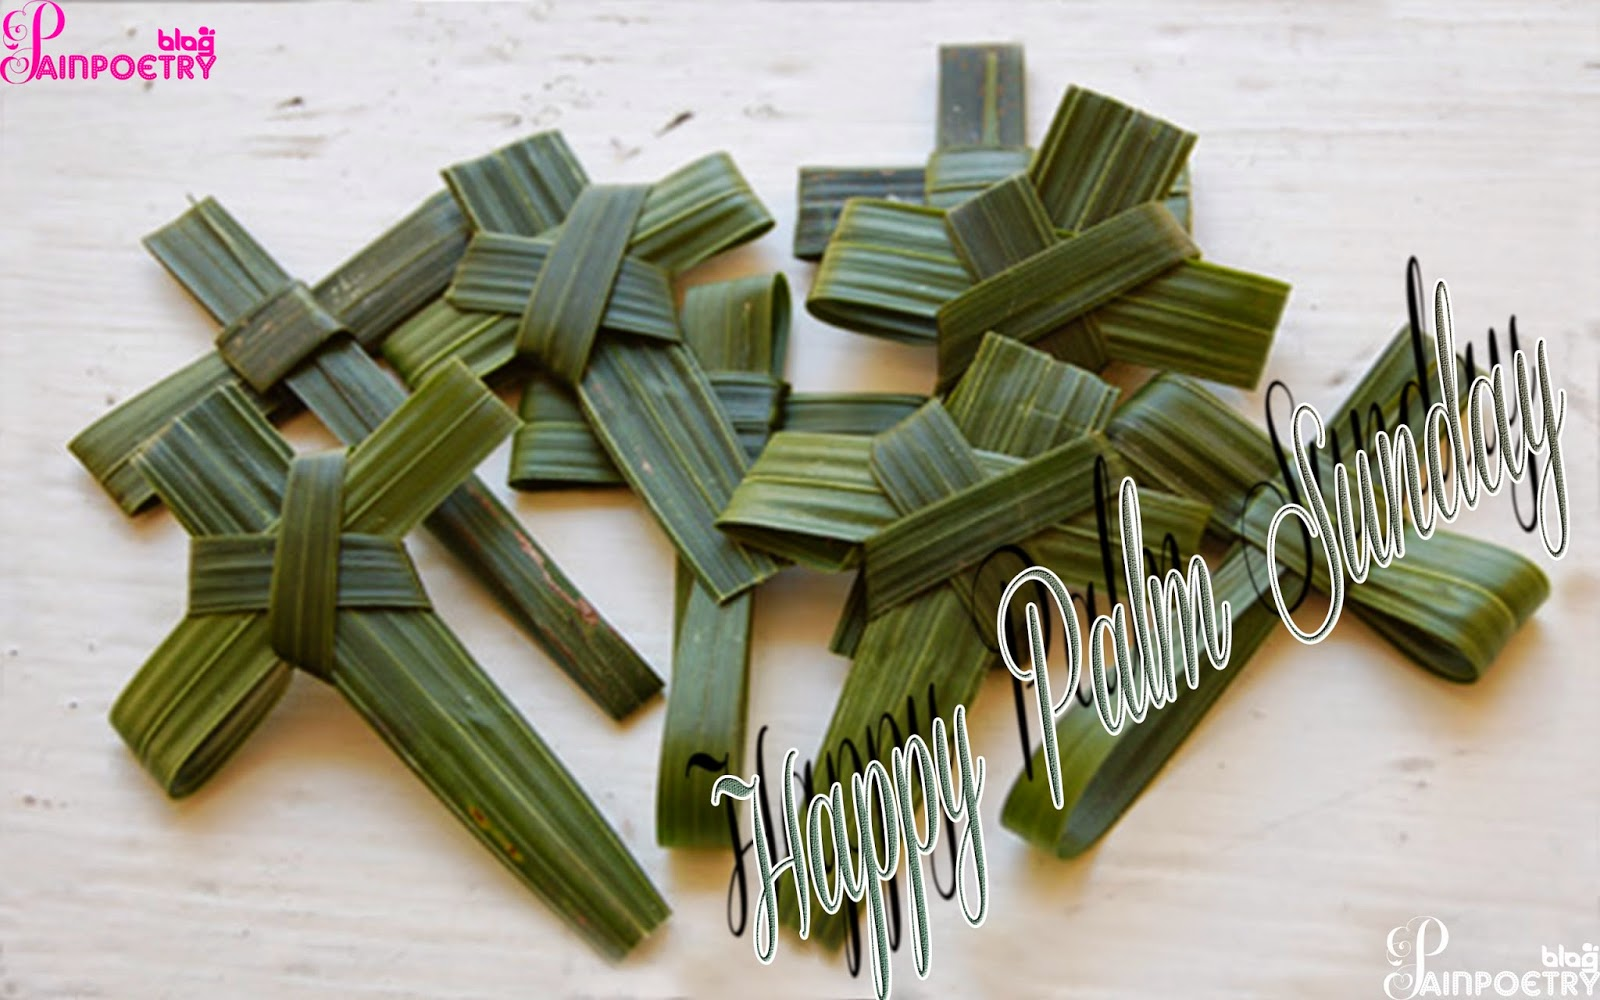 Palm-Sunday-Lot-Of-Cross-Image-HD